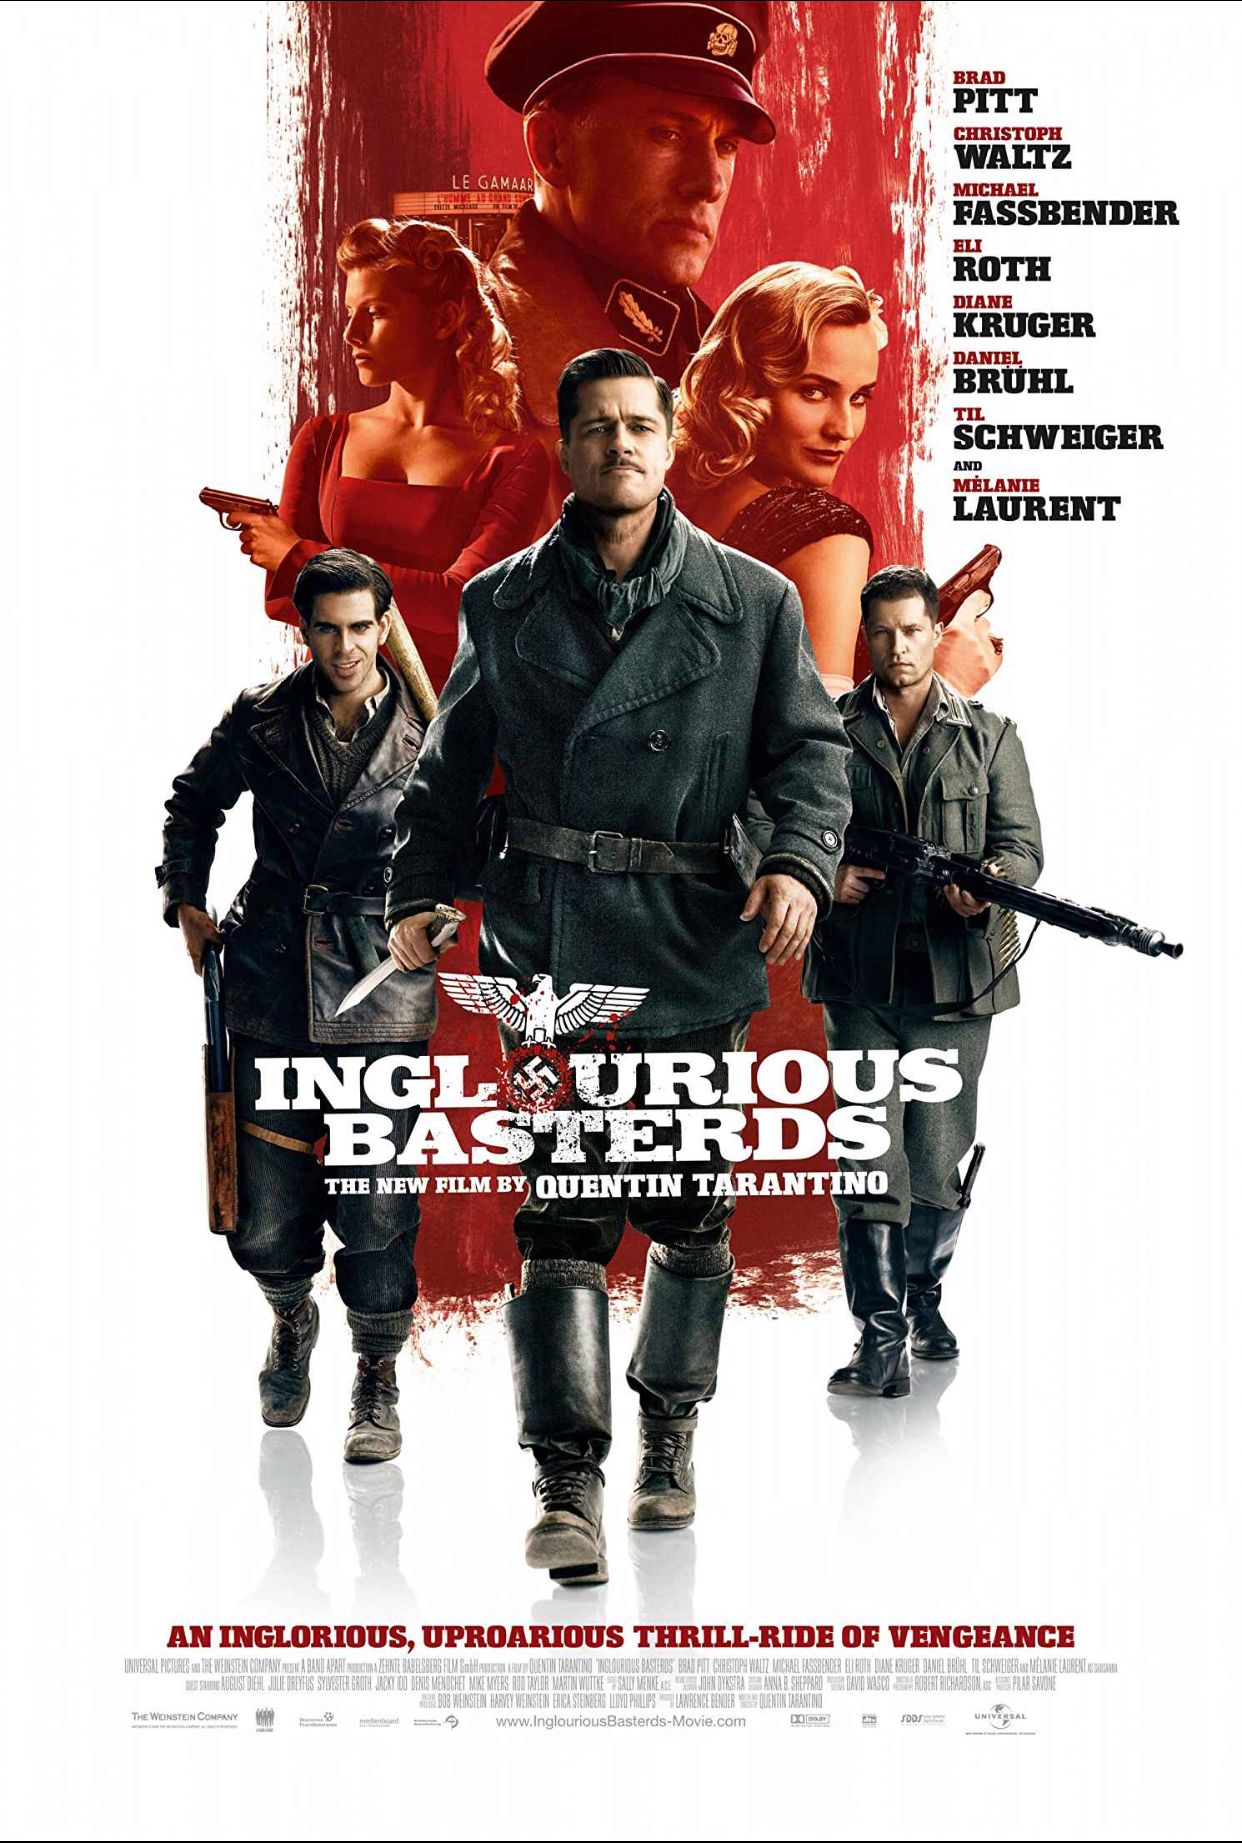 Notes On A Film: Inglourious Basterds